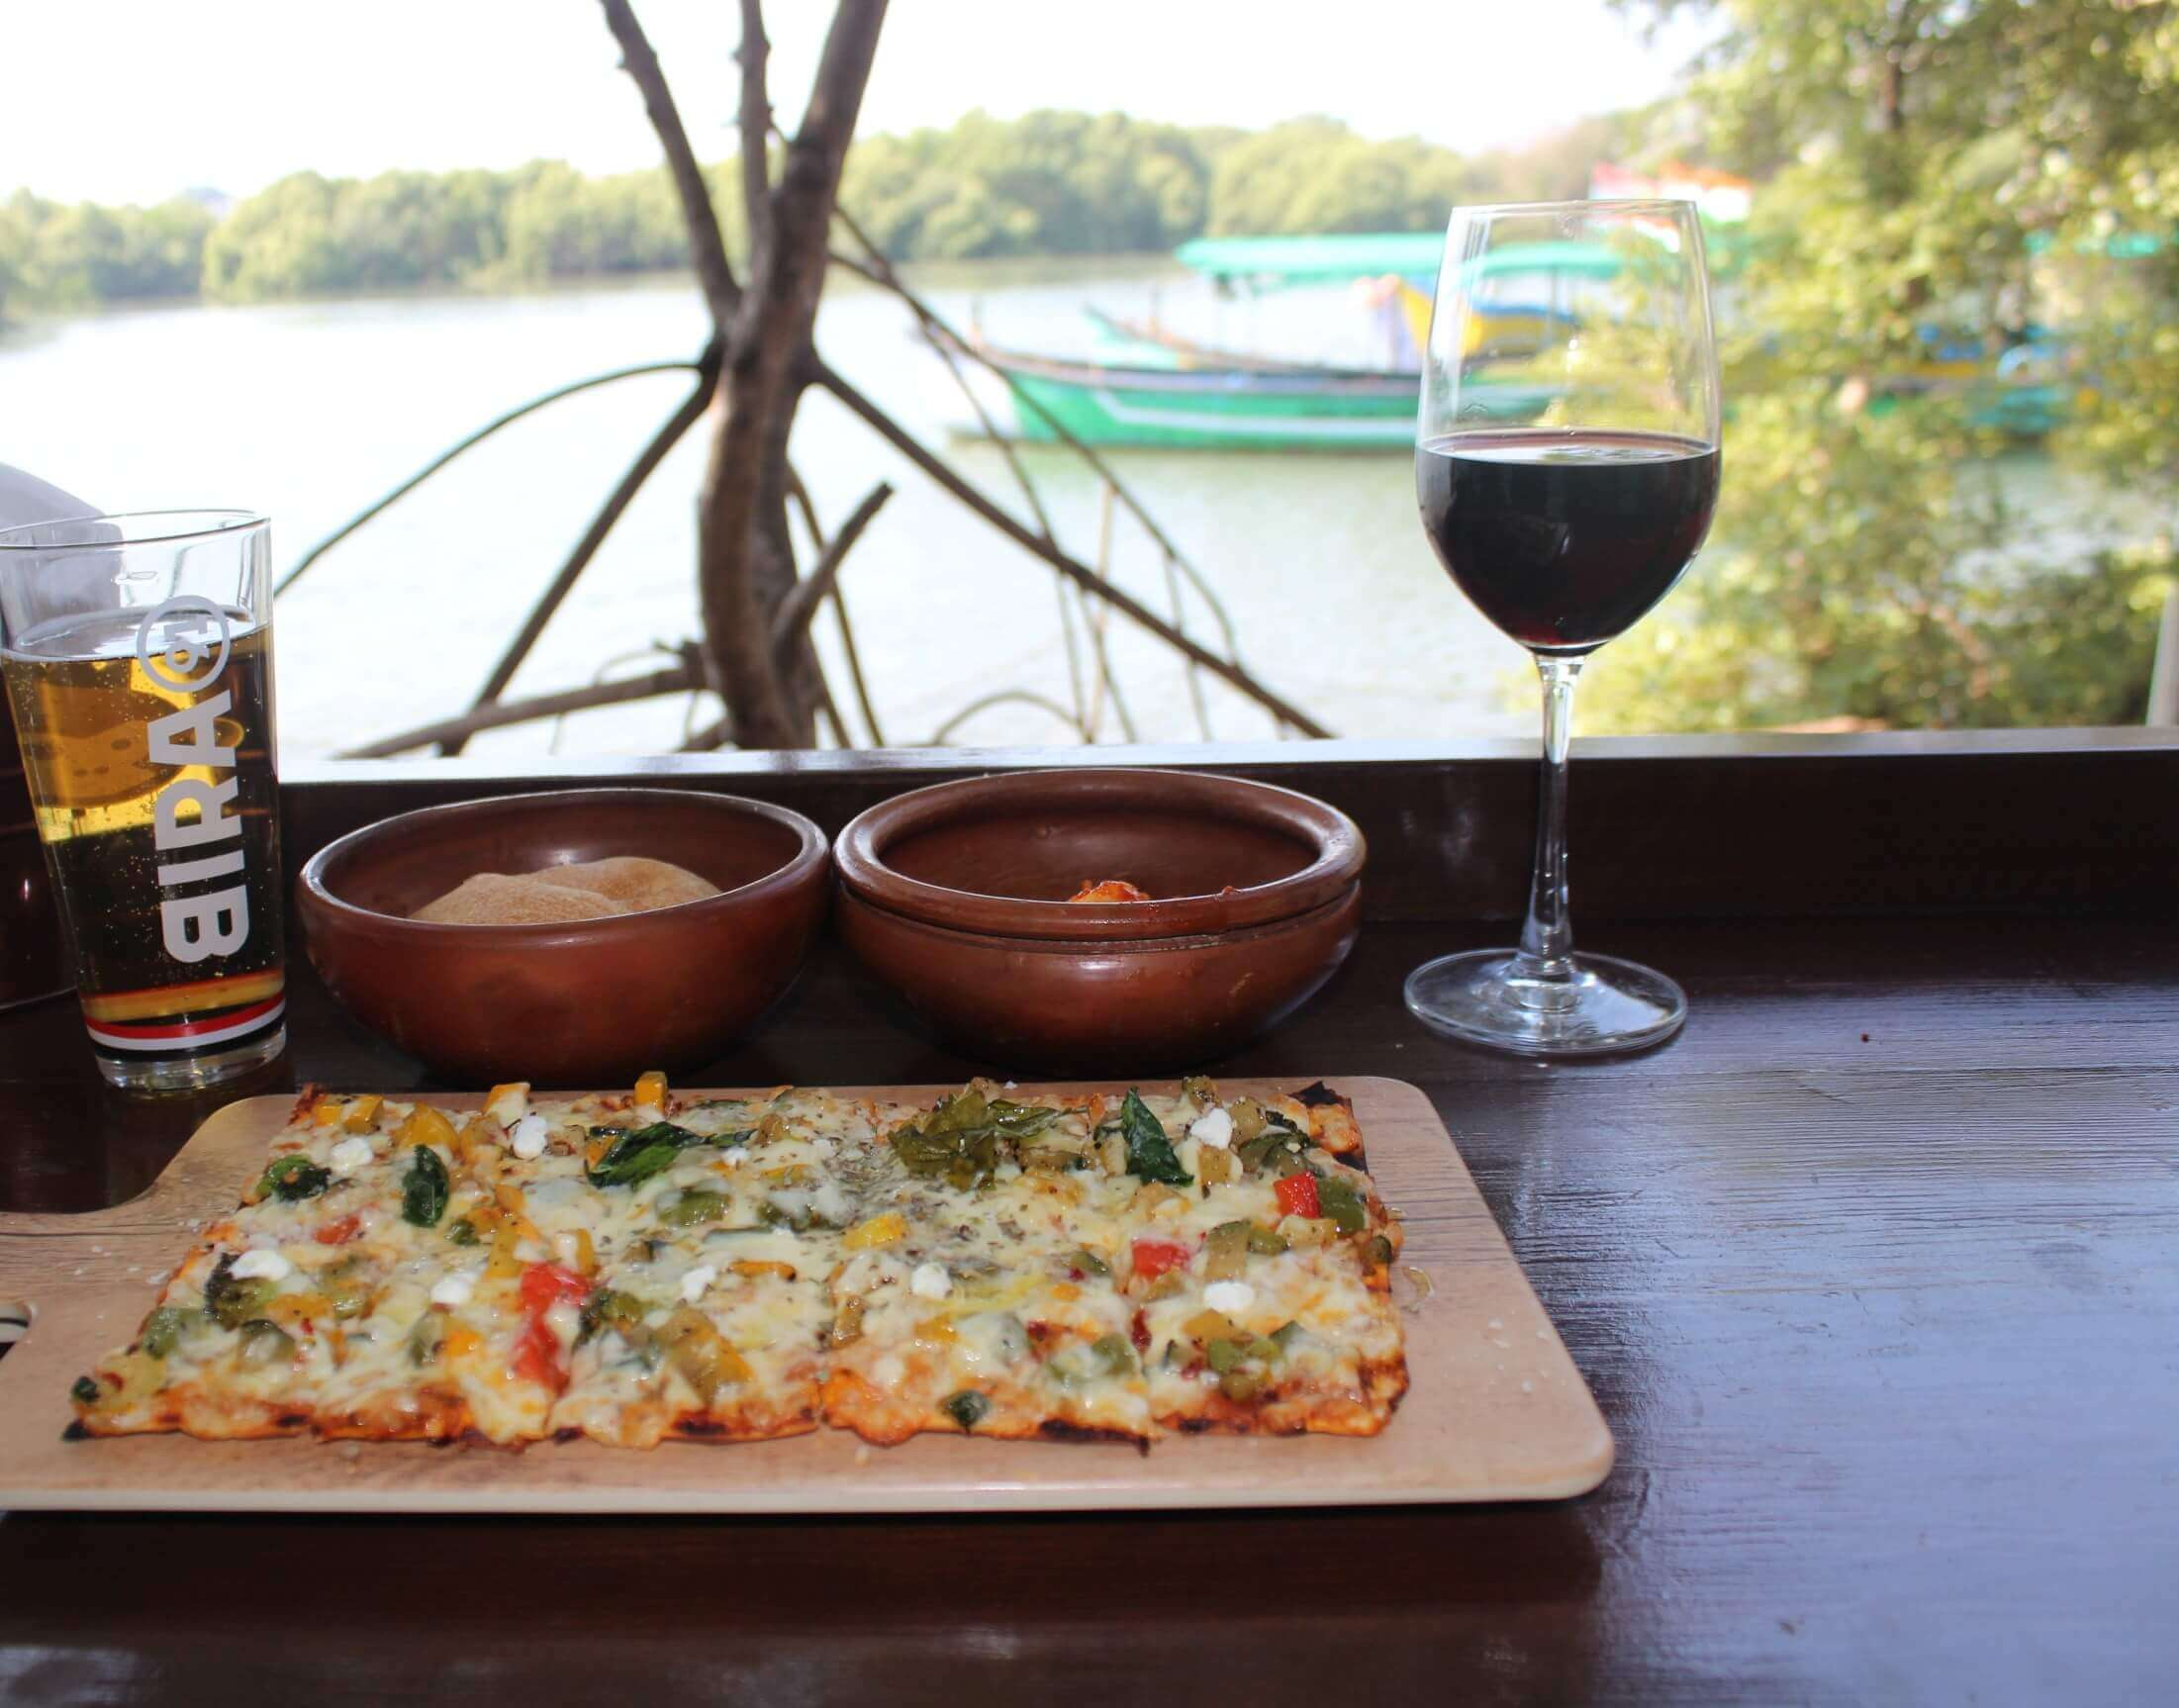 Best Restaurants in North Goa places to visit - The Lazy Goose